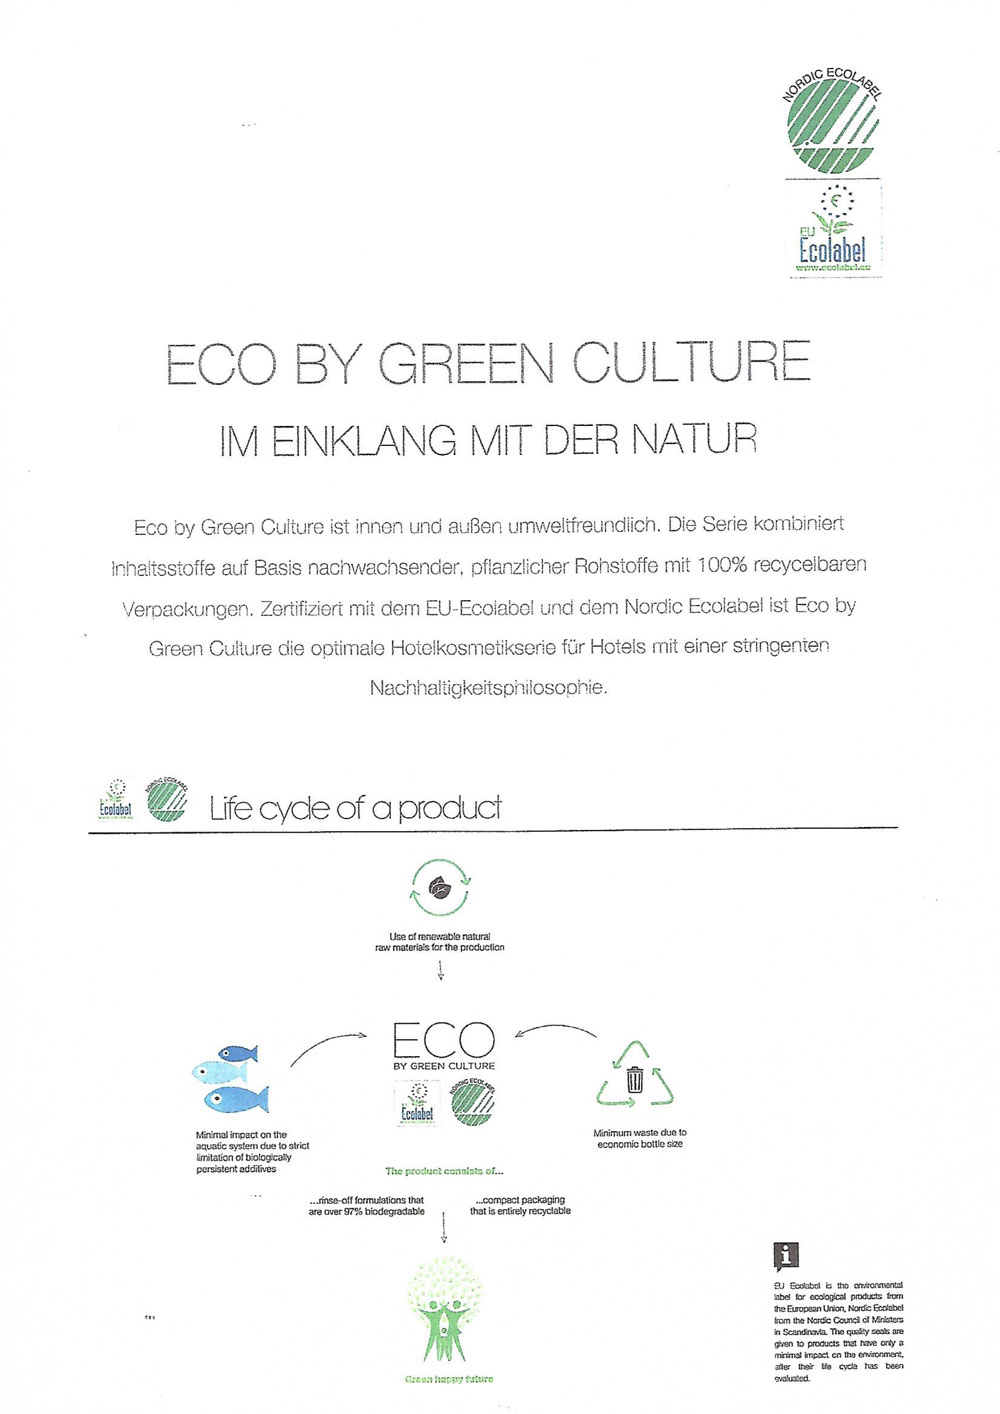 Eco-by-Green-Culture-2.jpg